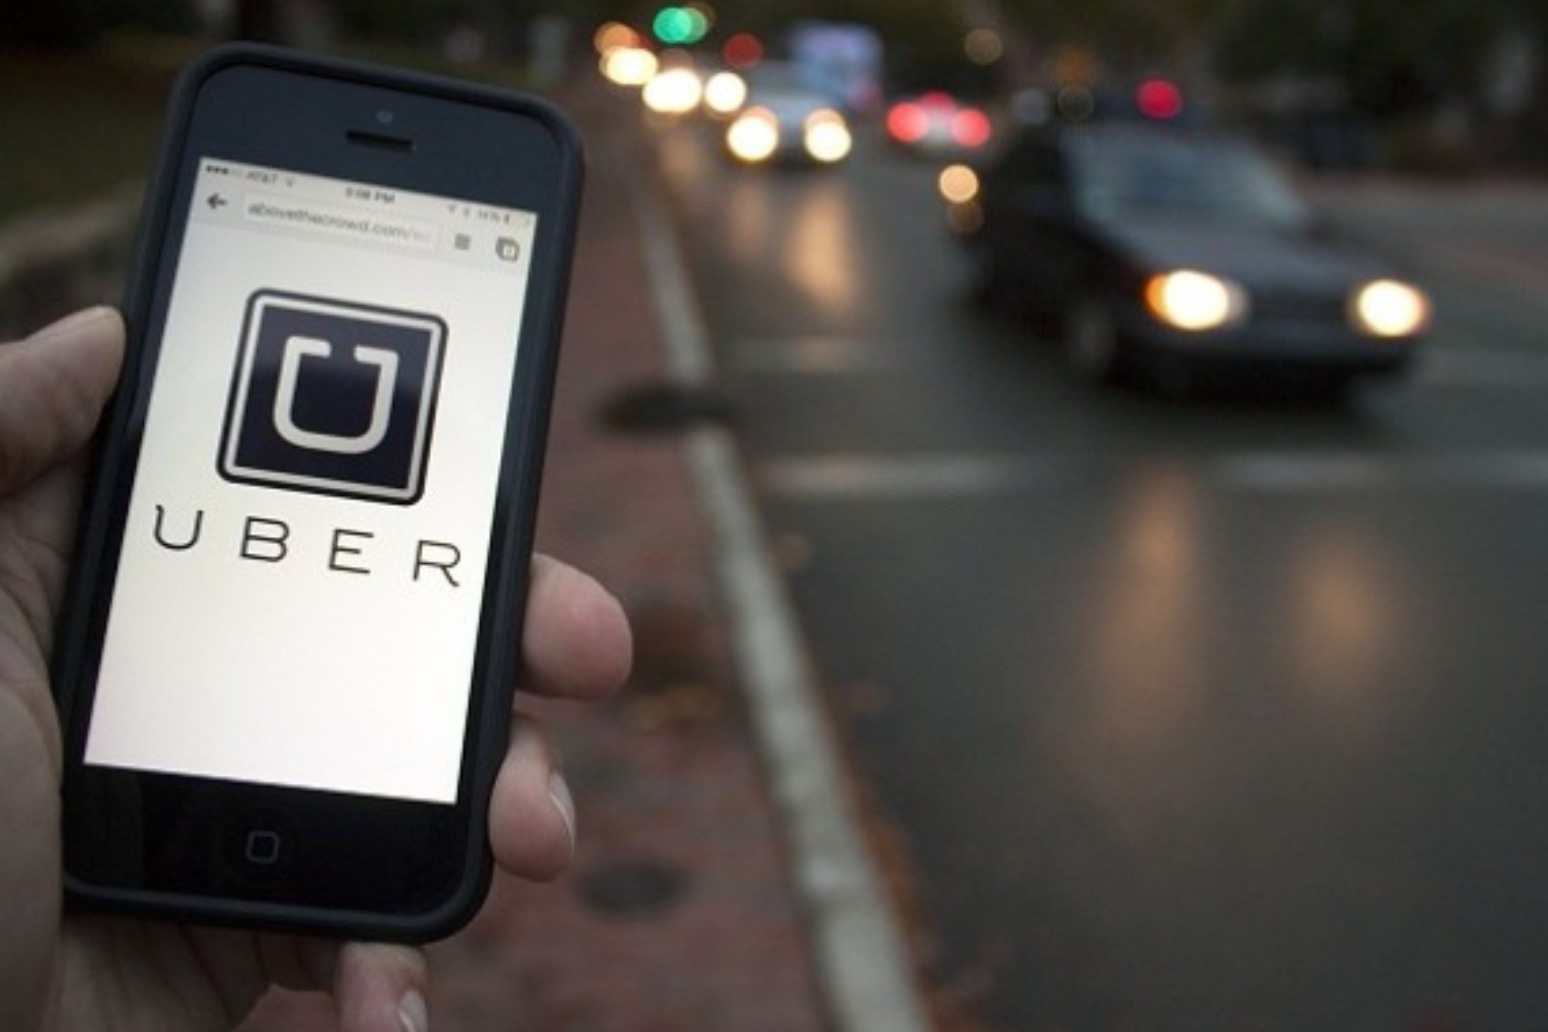 UBER IN COURT OVER AFTER LONDON LICENCE WITHDRAWN